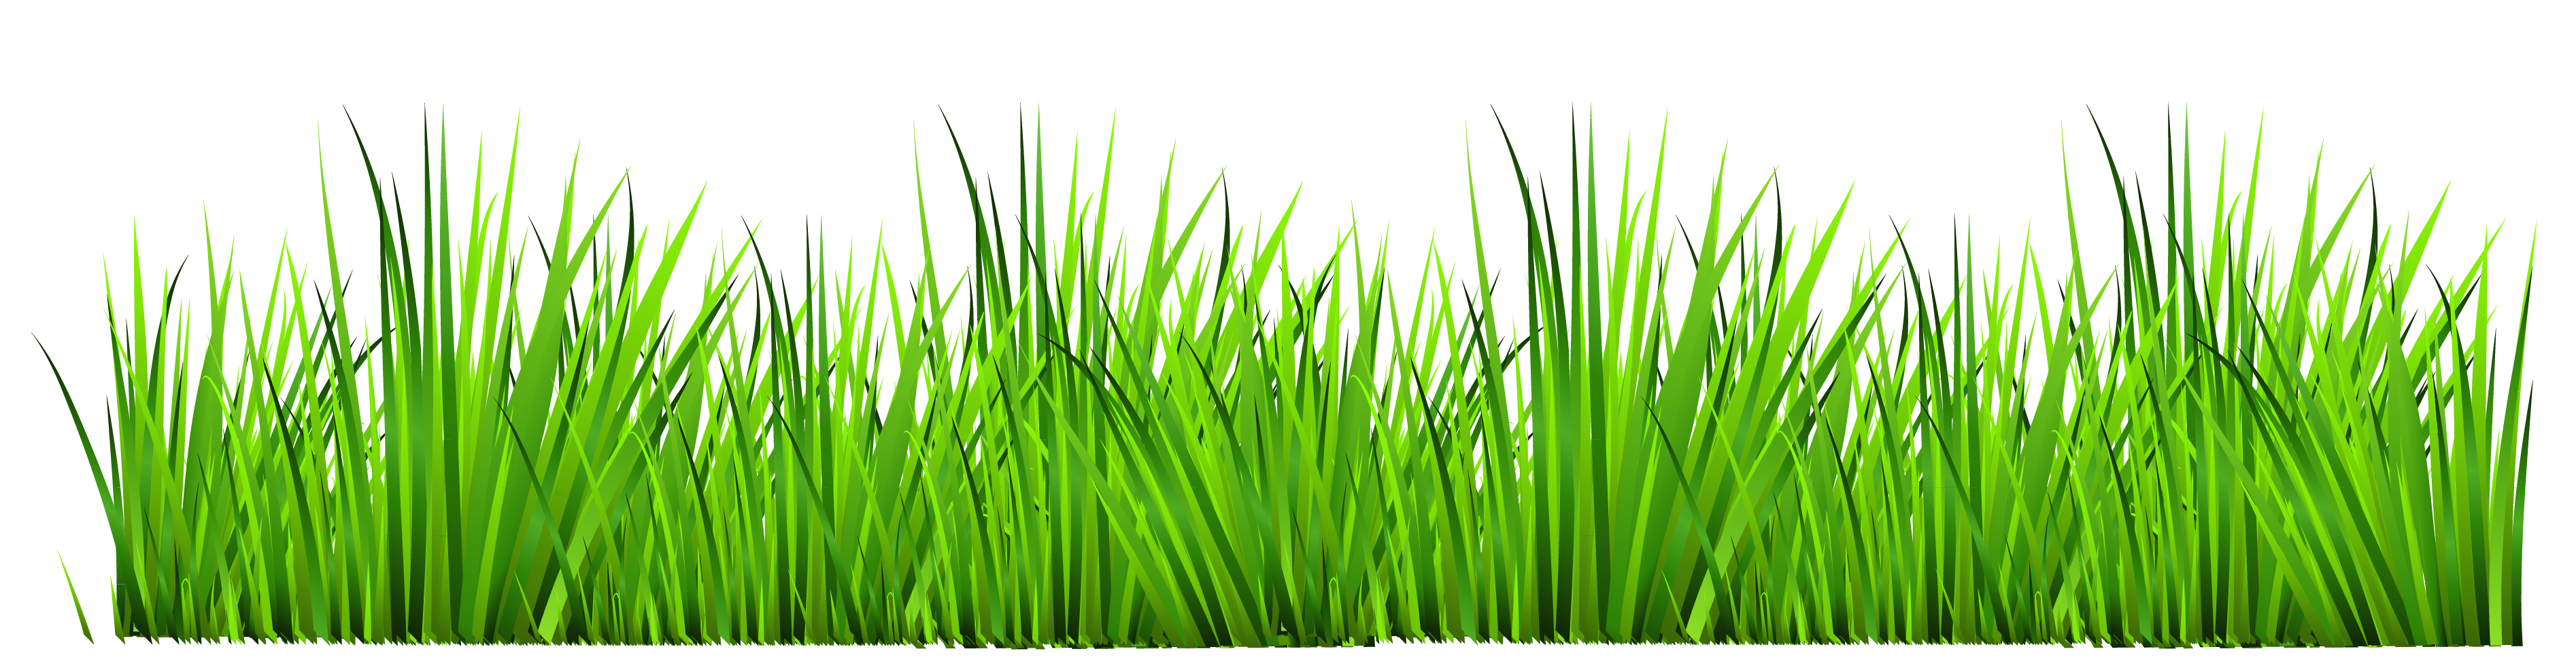 Free Grass Border Cliparts, Download Free Clip Art, Free Clip Art on.